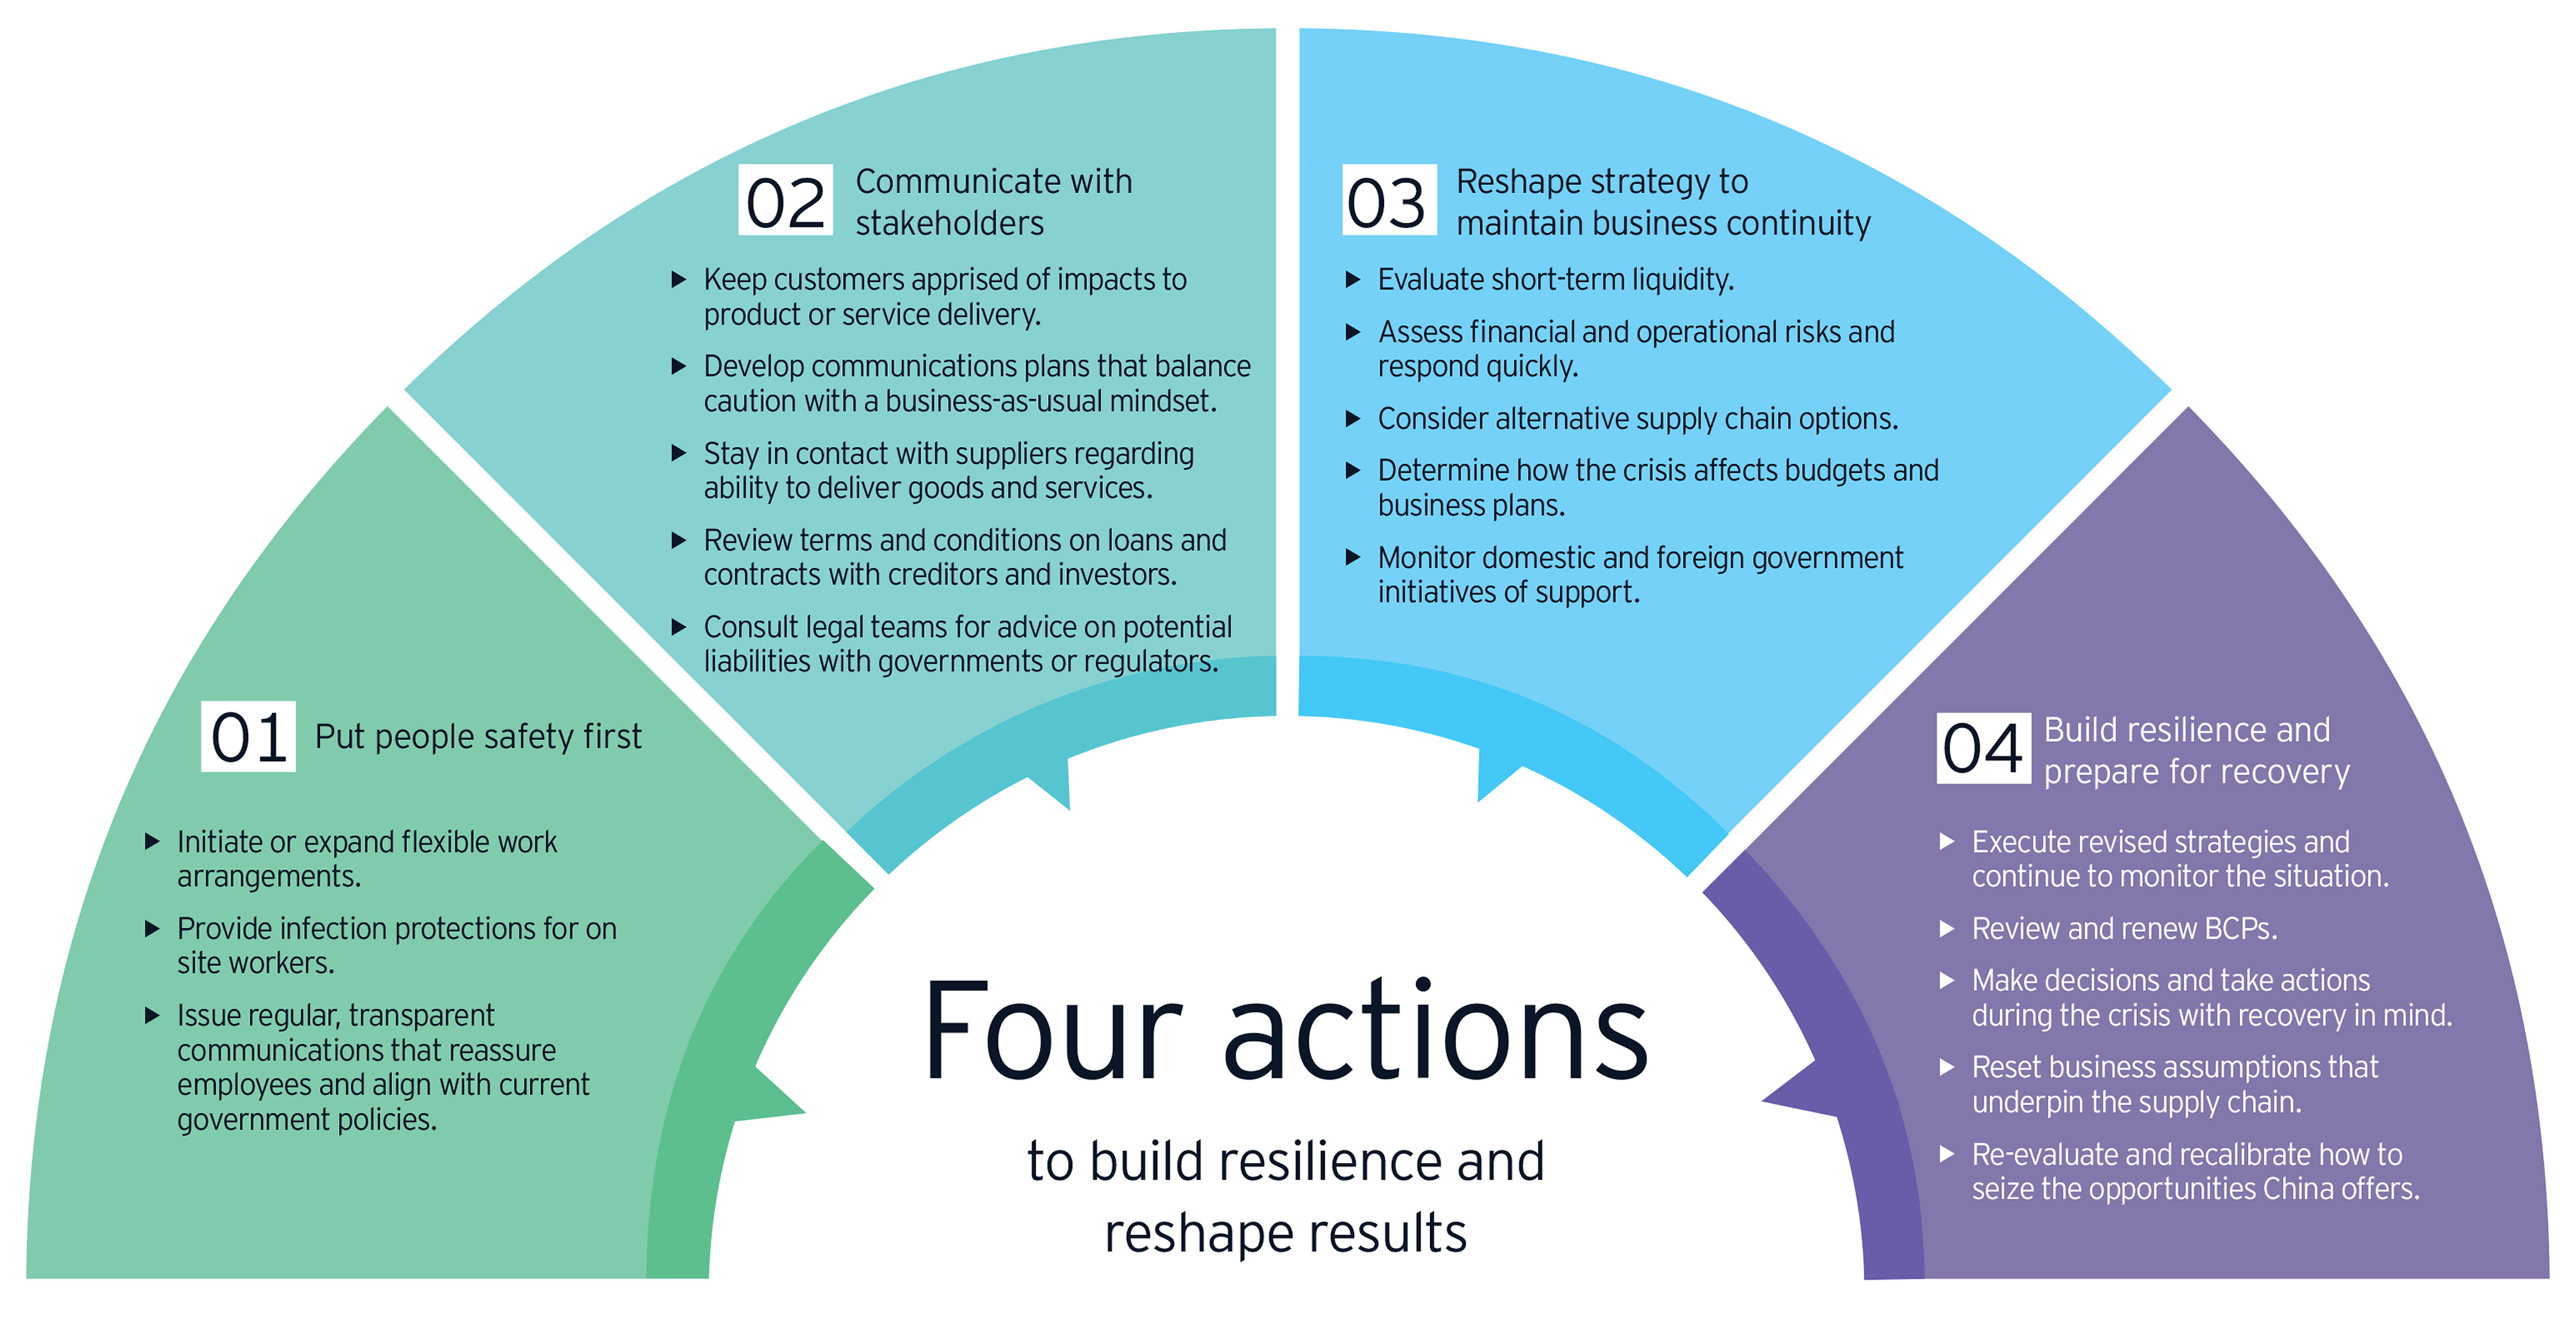 Covid 19 Business Continuity Plan Five Ways To Reshape